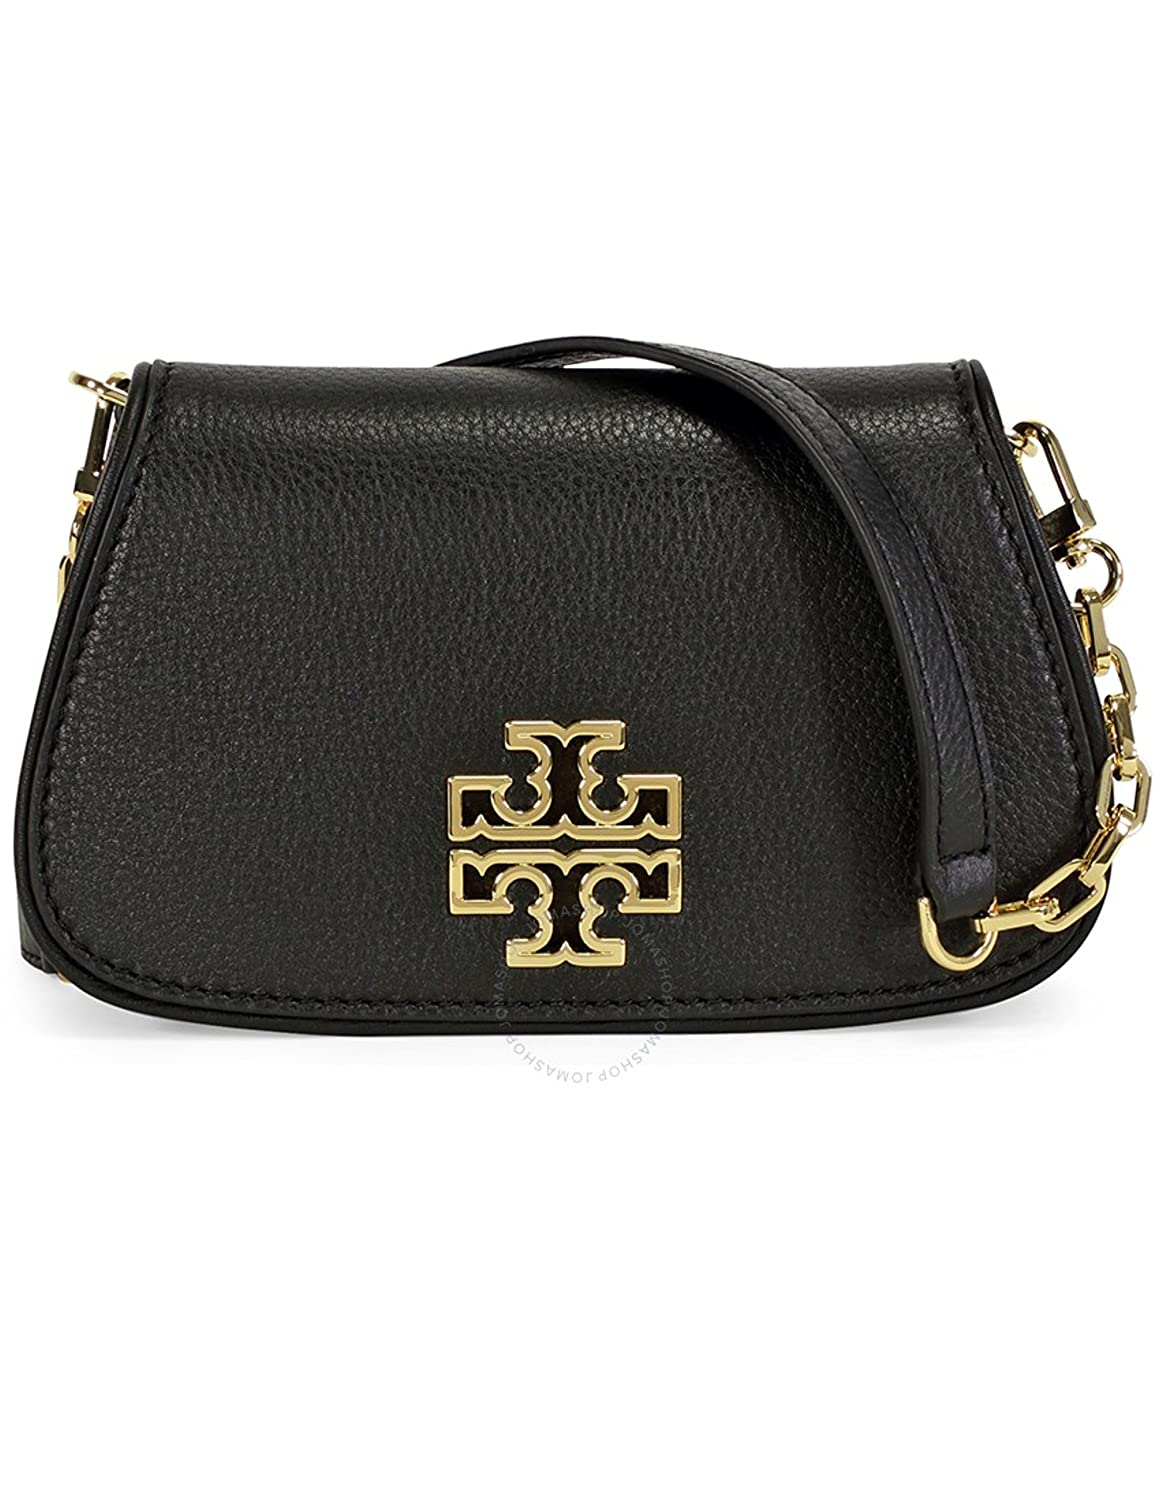 db9001f7dc1 Tory Burch Britten Mini Crossbody Bag